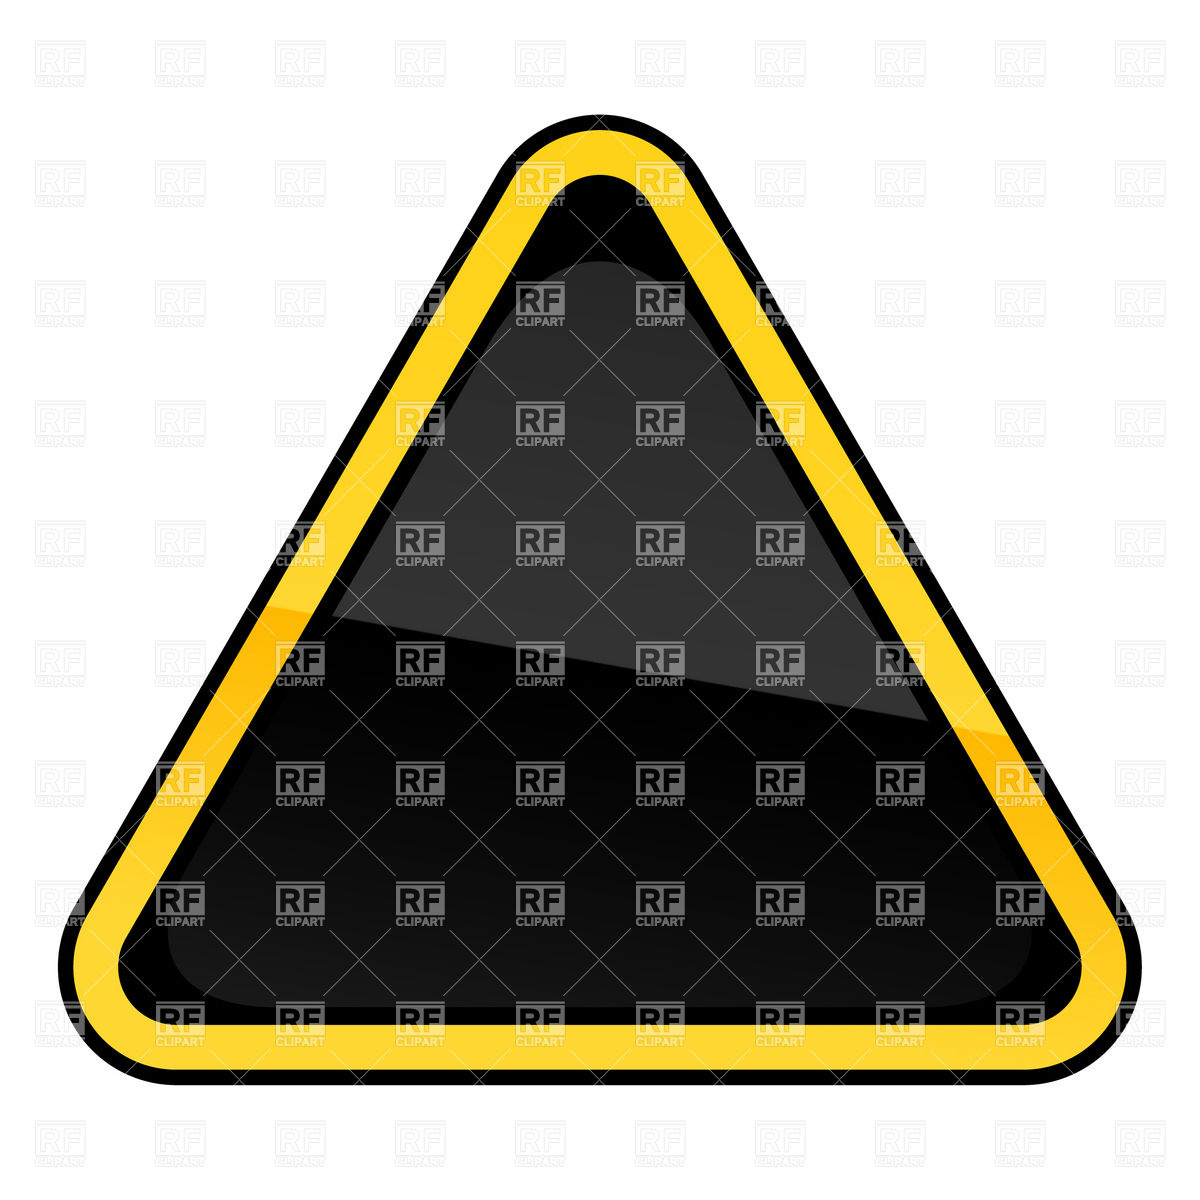 1200x1200 Black Blank Three Cornered Road Sign With Yellow Border Vector